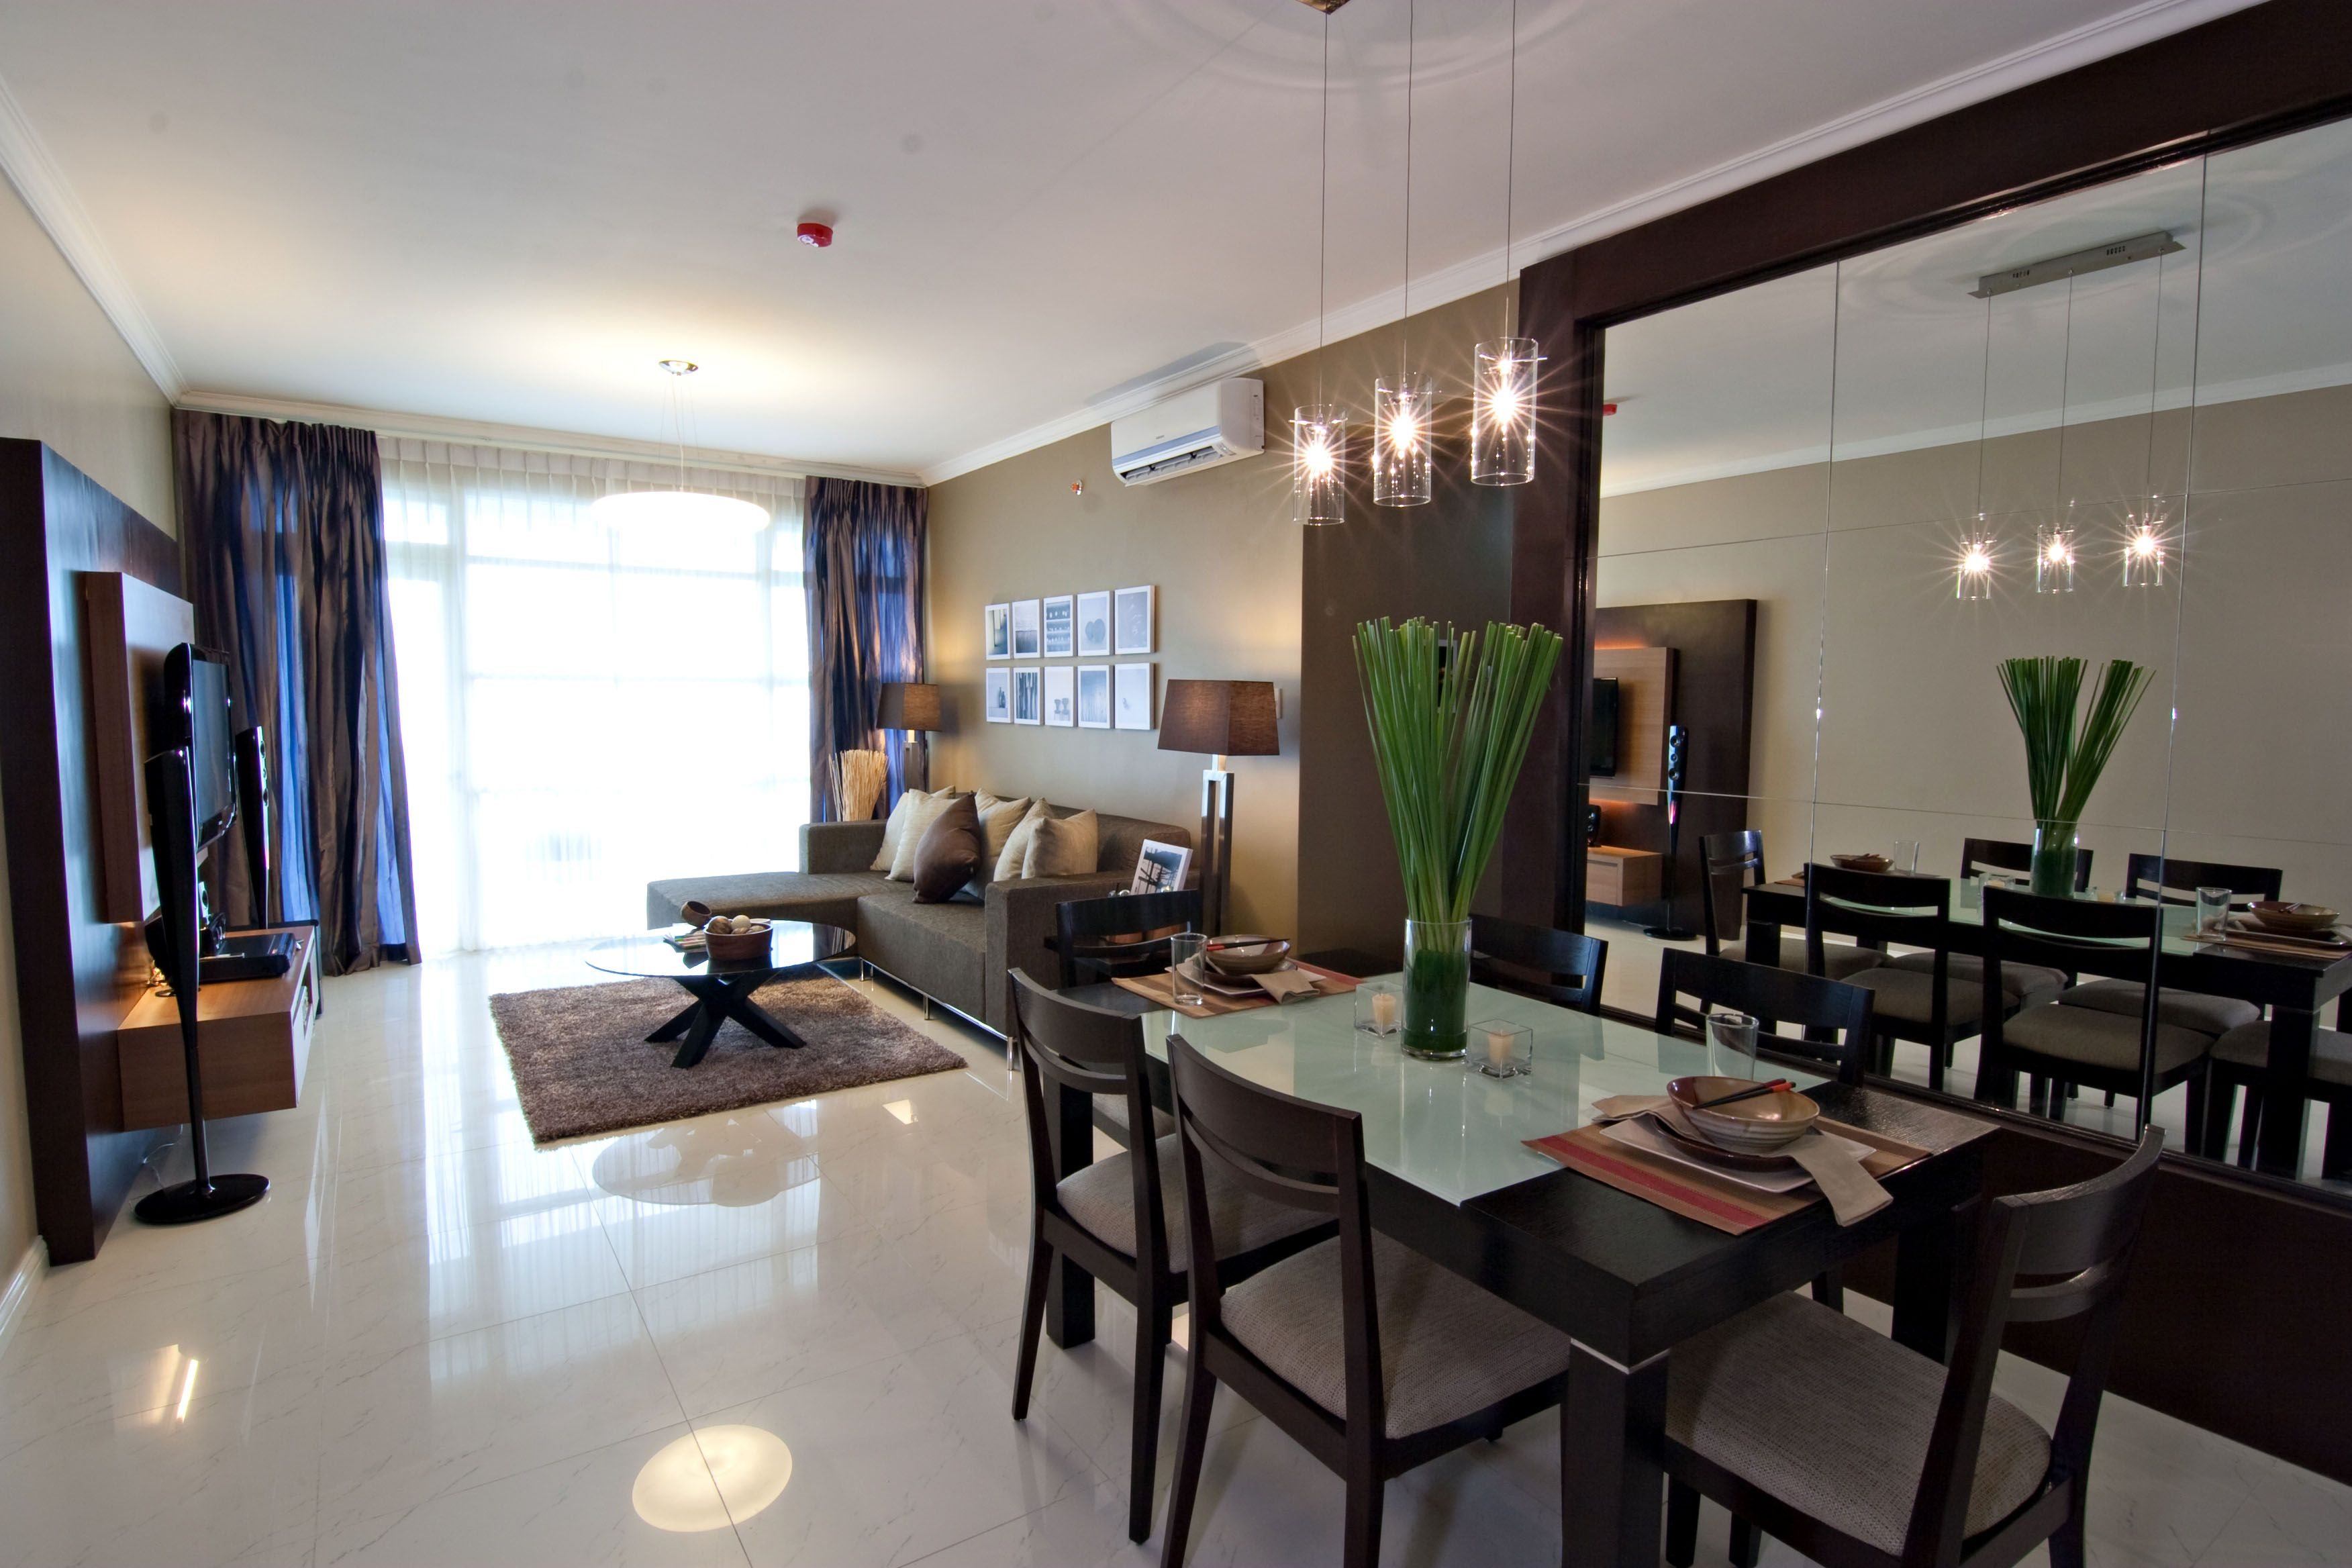 House Interior Design · Citylights Garden Condominium By Adrian Del Monte  At Coroflot.com